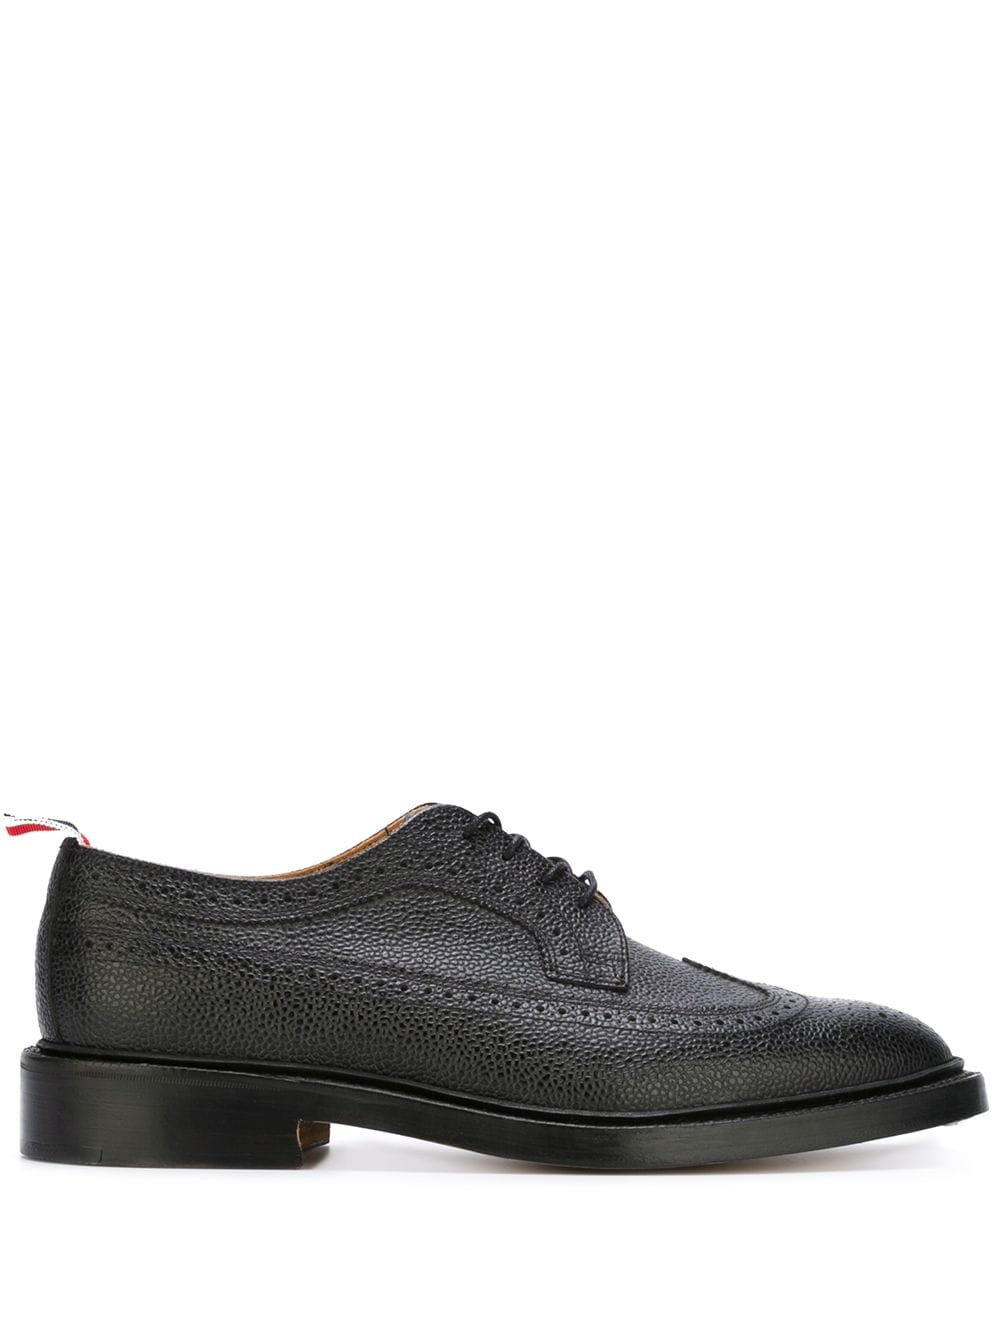 Thom Browne Classic Longwing Brogue with Leather Sole - Black von Thom Browne